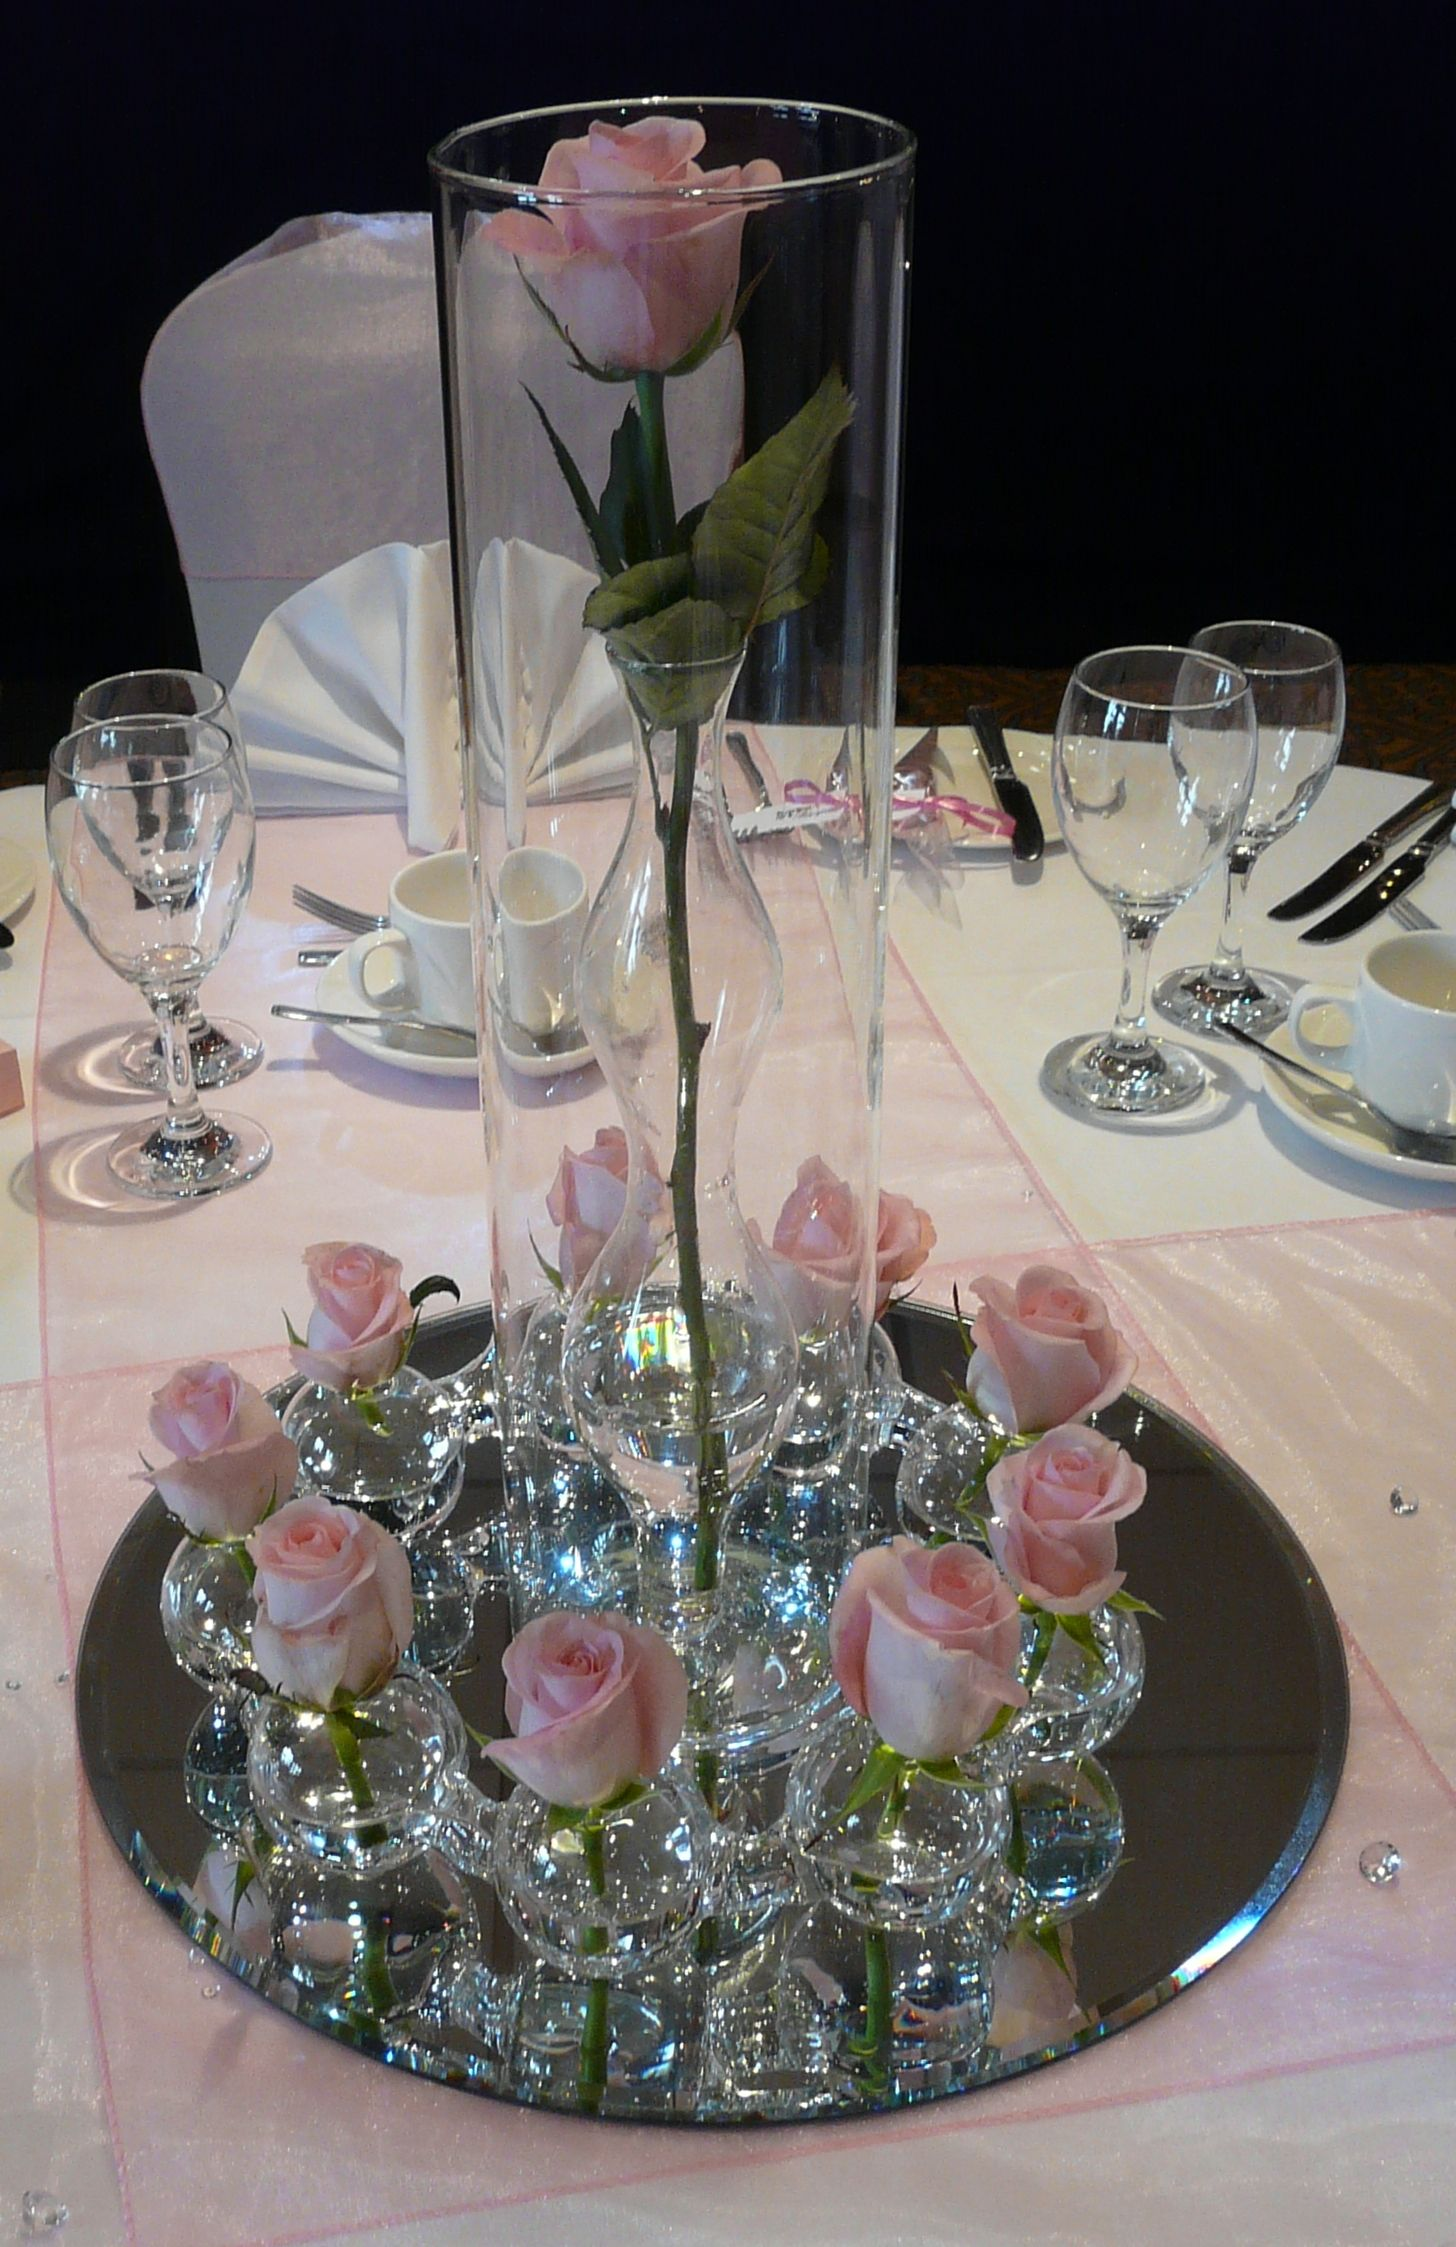 Round Mirror Tall Vase With Pink Rose And Small T Light Holders Heads In Each